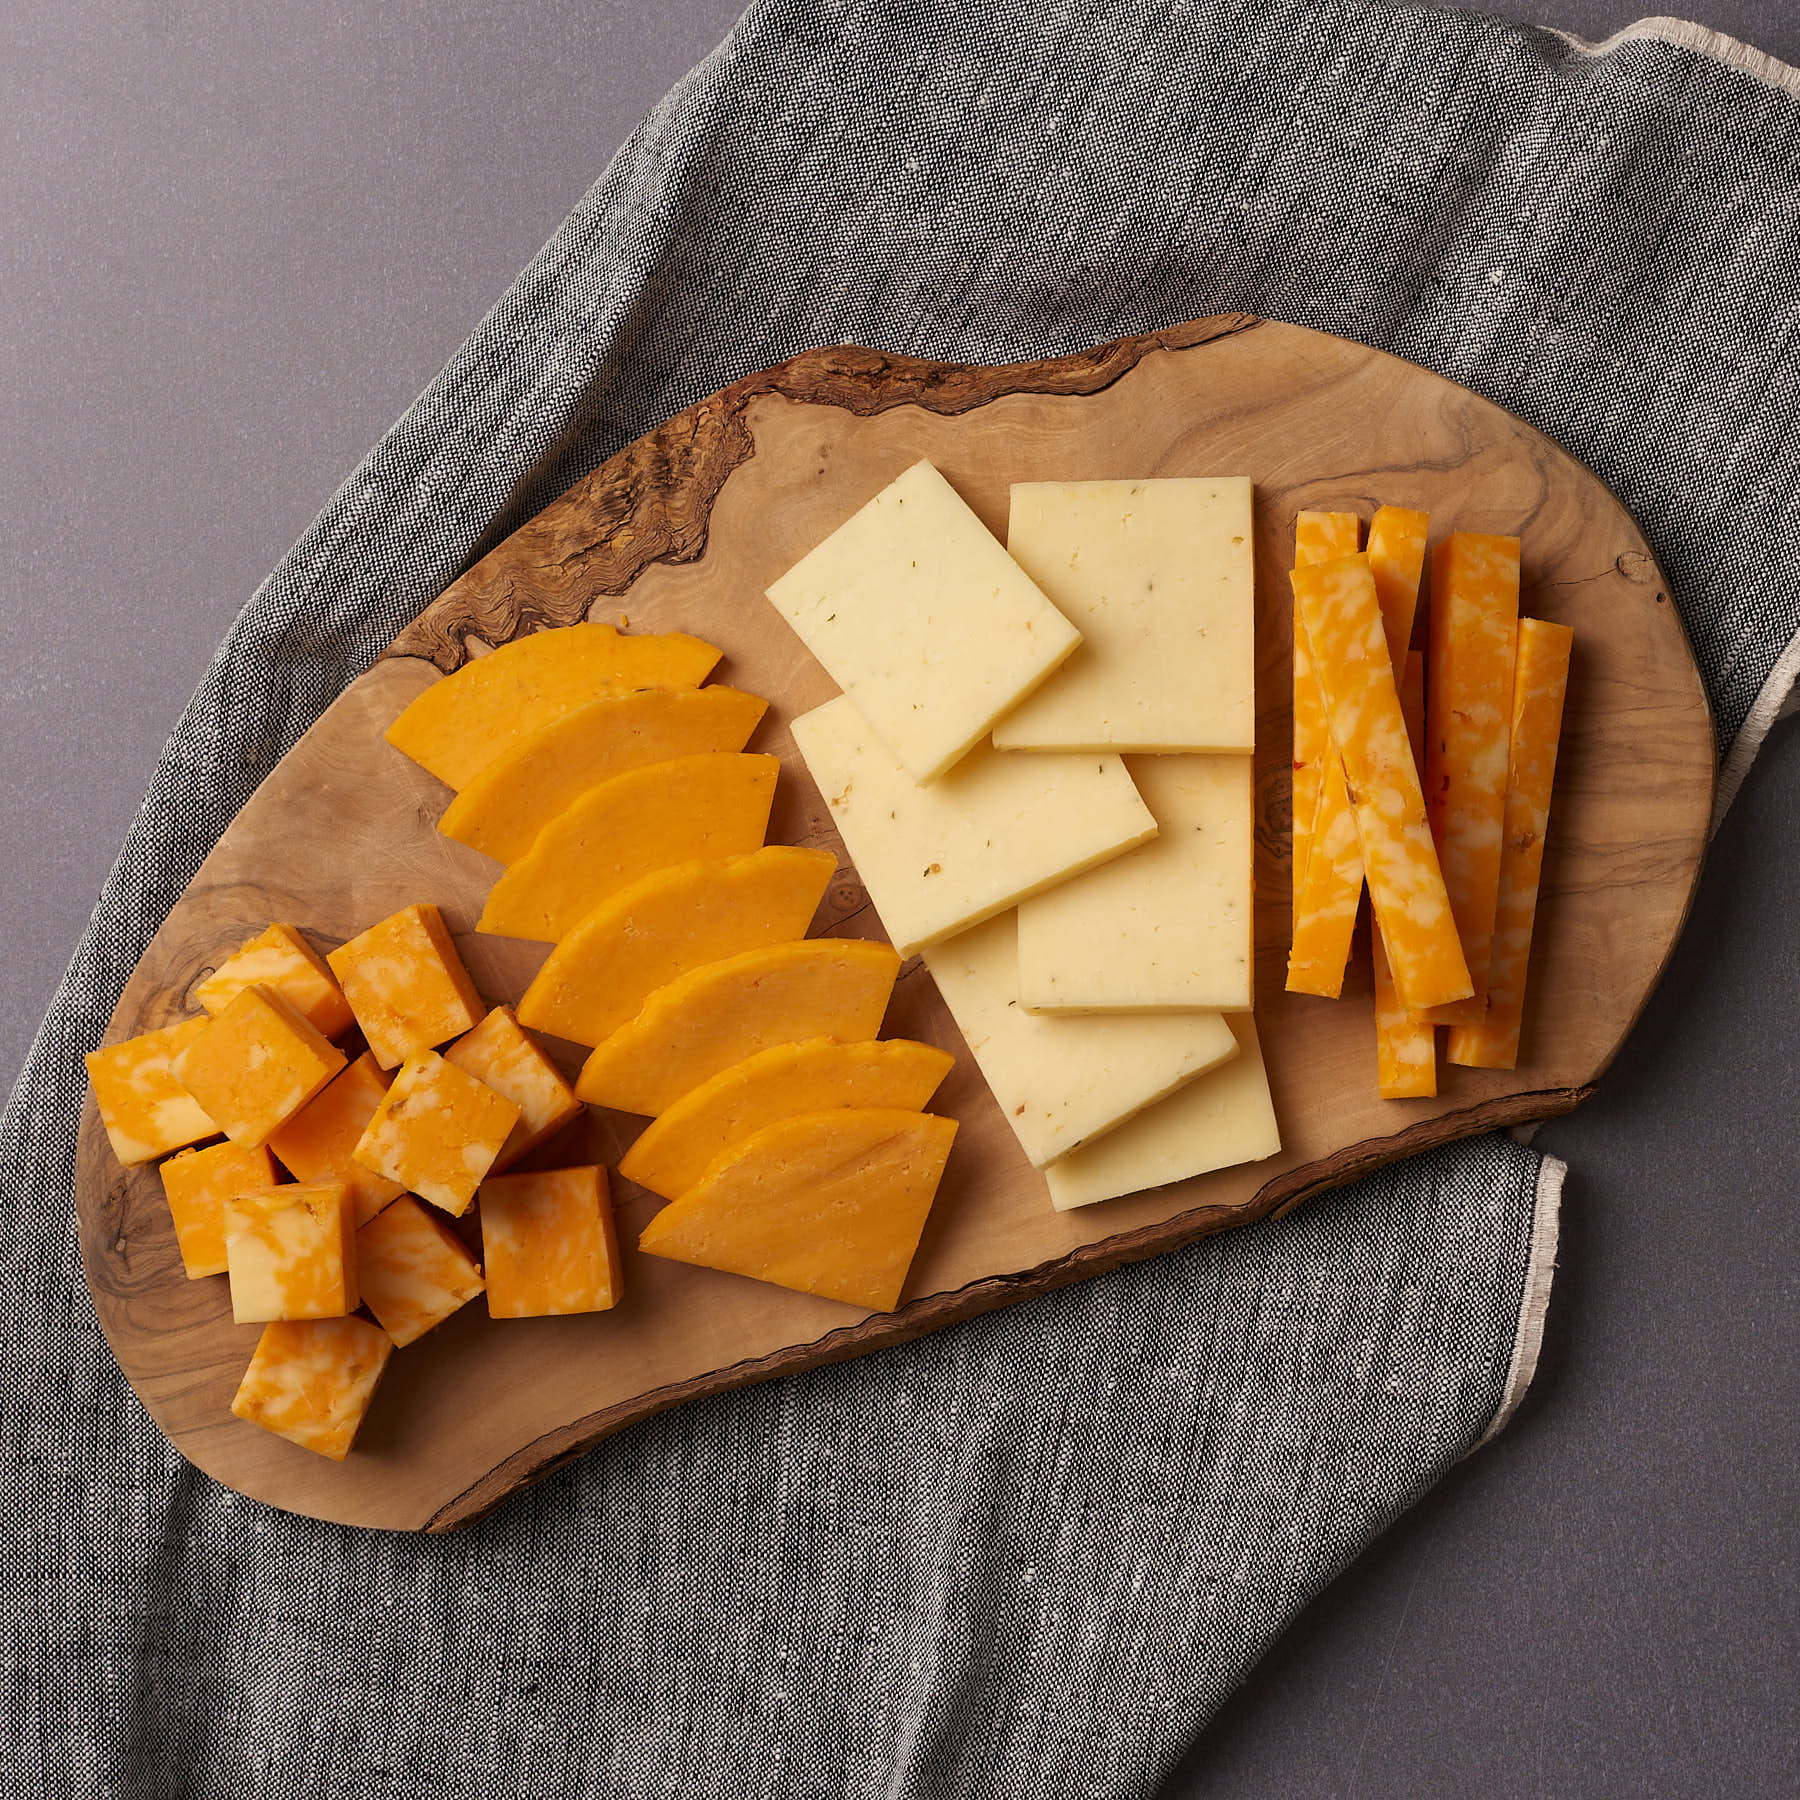 image of cheese board featuring Fiery Jack cheese